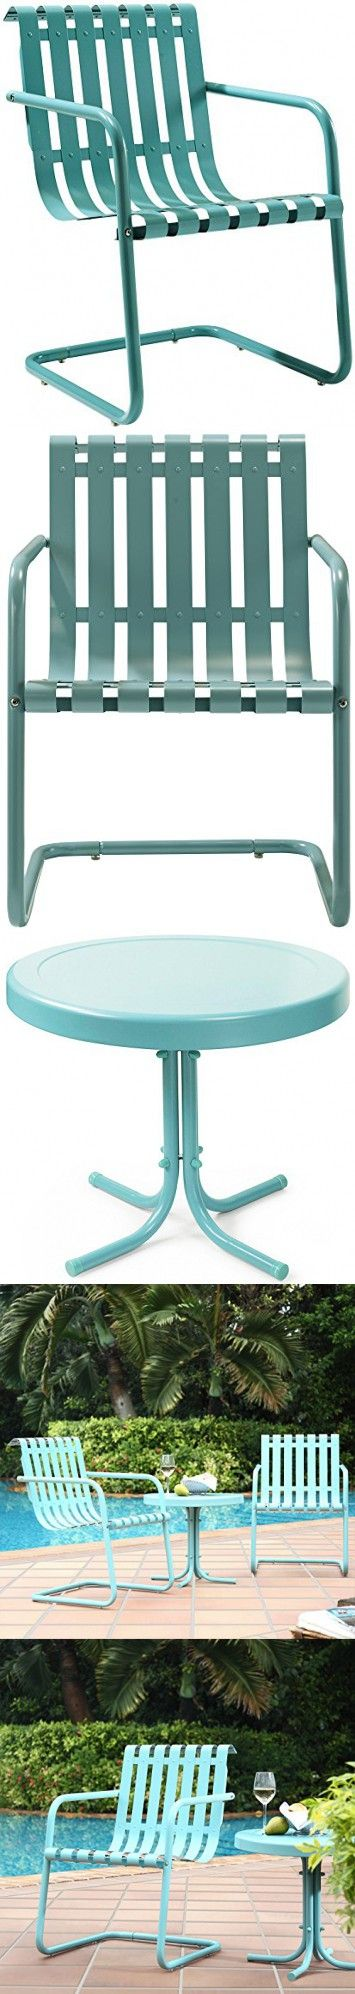 Crosley Furniture Gracie 3 Piece Retro Metal Outdoor Conversation Set With Side Table And 2 Chairs Caribbean Blue Outdoor Conversation Sets Conversation Set Outdoor